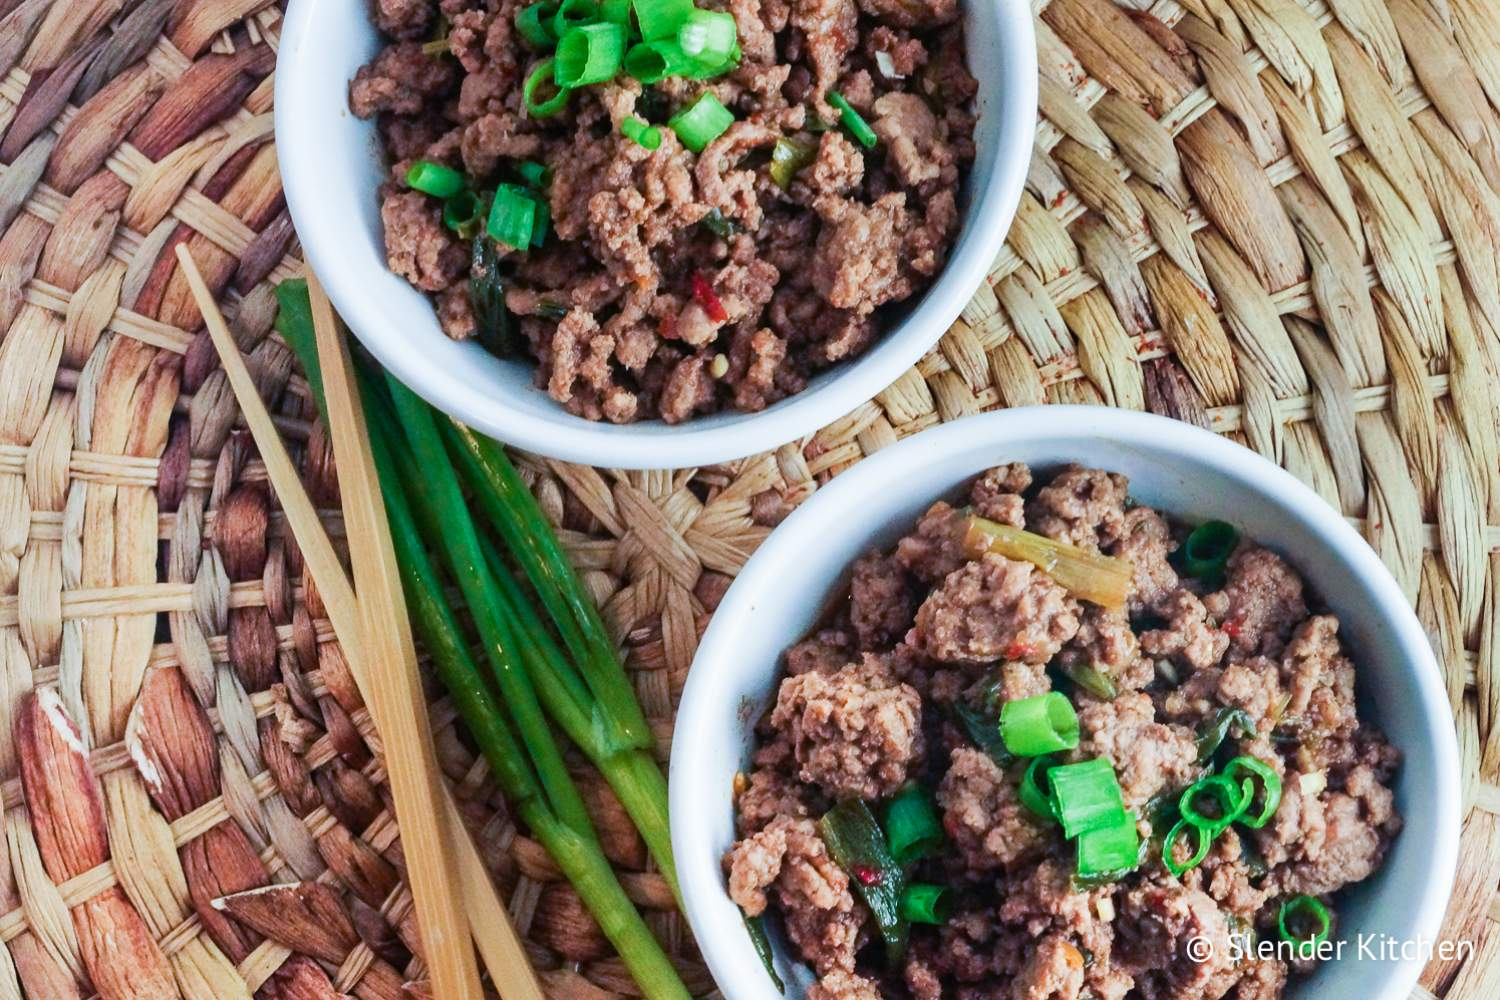 Healthy Mongolian Ground Beef is dinner on Wednesday in this week's healthy meal plan.